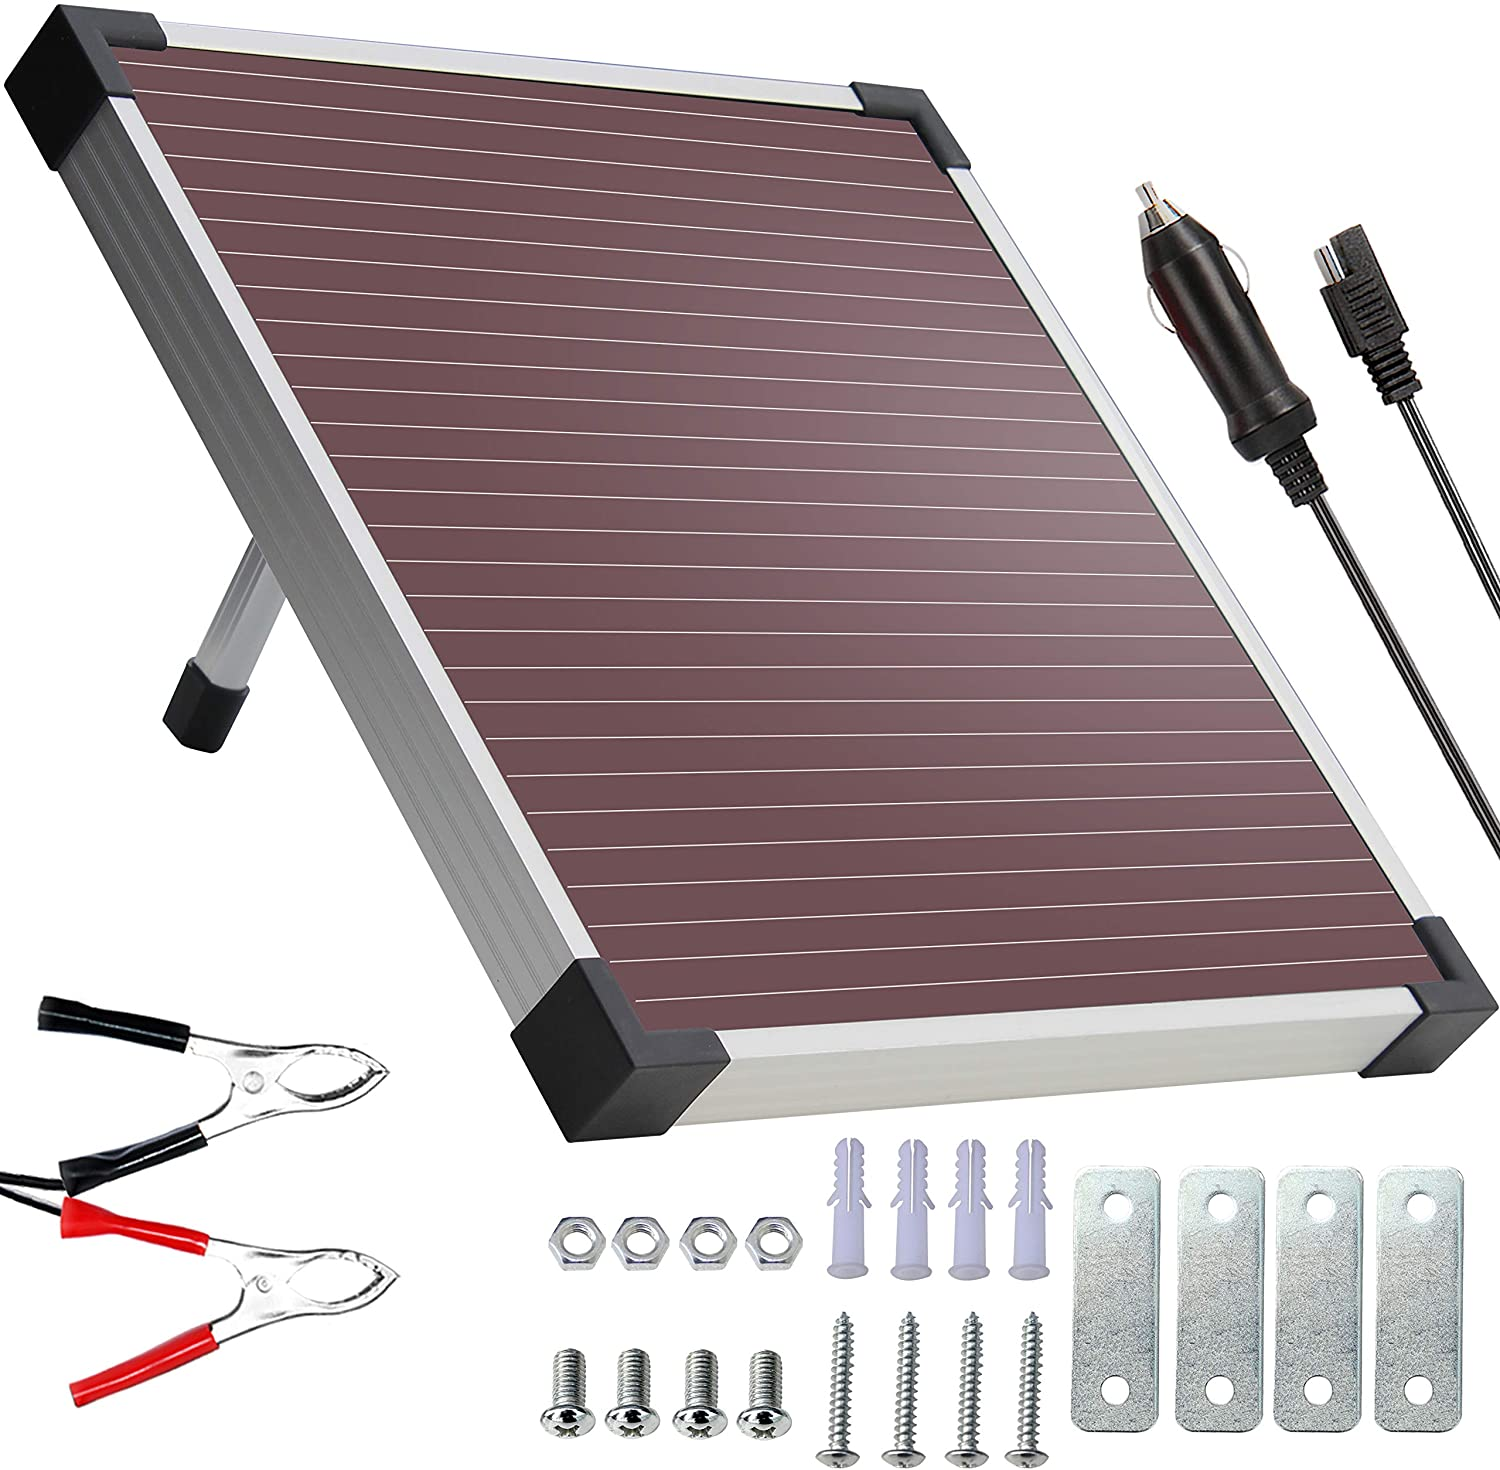 SOLPERK 9W Amorphous Solar Panel, Solar trickle Charger, 12V Solar Battery Charger and Maintainer,Suitable for Automotive, Motorcycle, Boat, ATV, Marine, RV, Trailer, Powersports, Snowmobile, etc